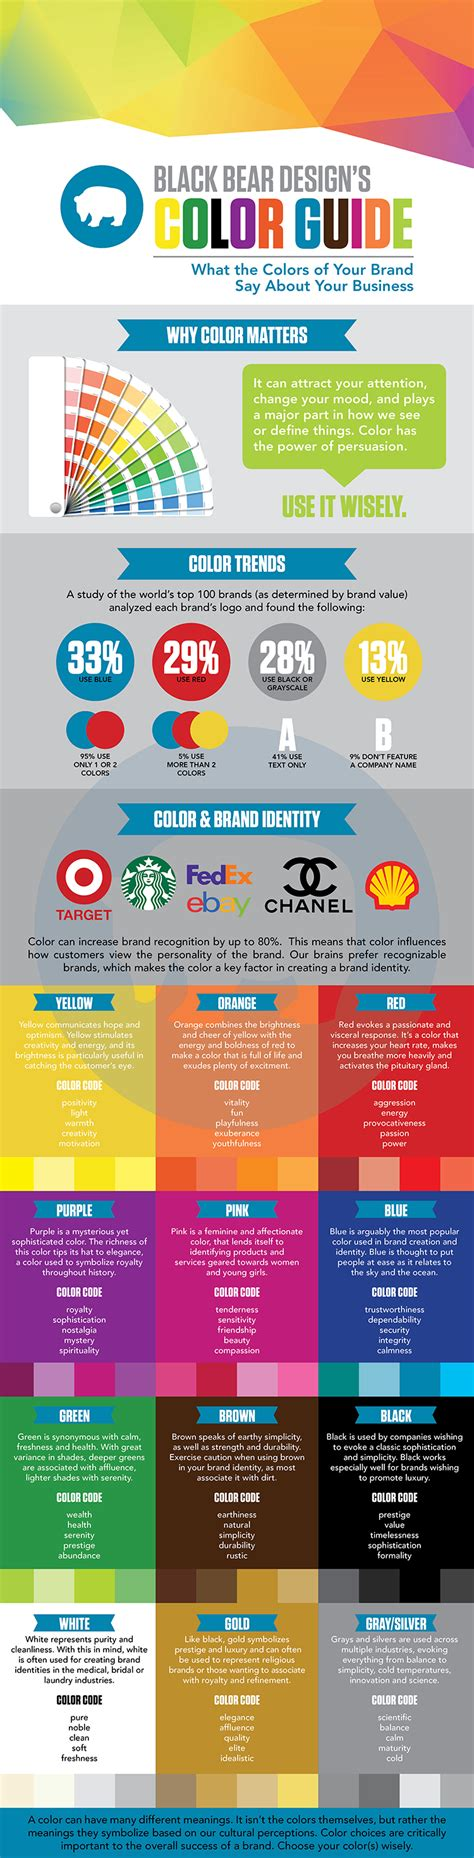 colors and meanings the meaning of color in graphic design color meanings